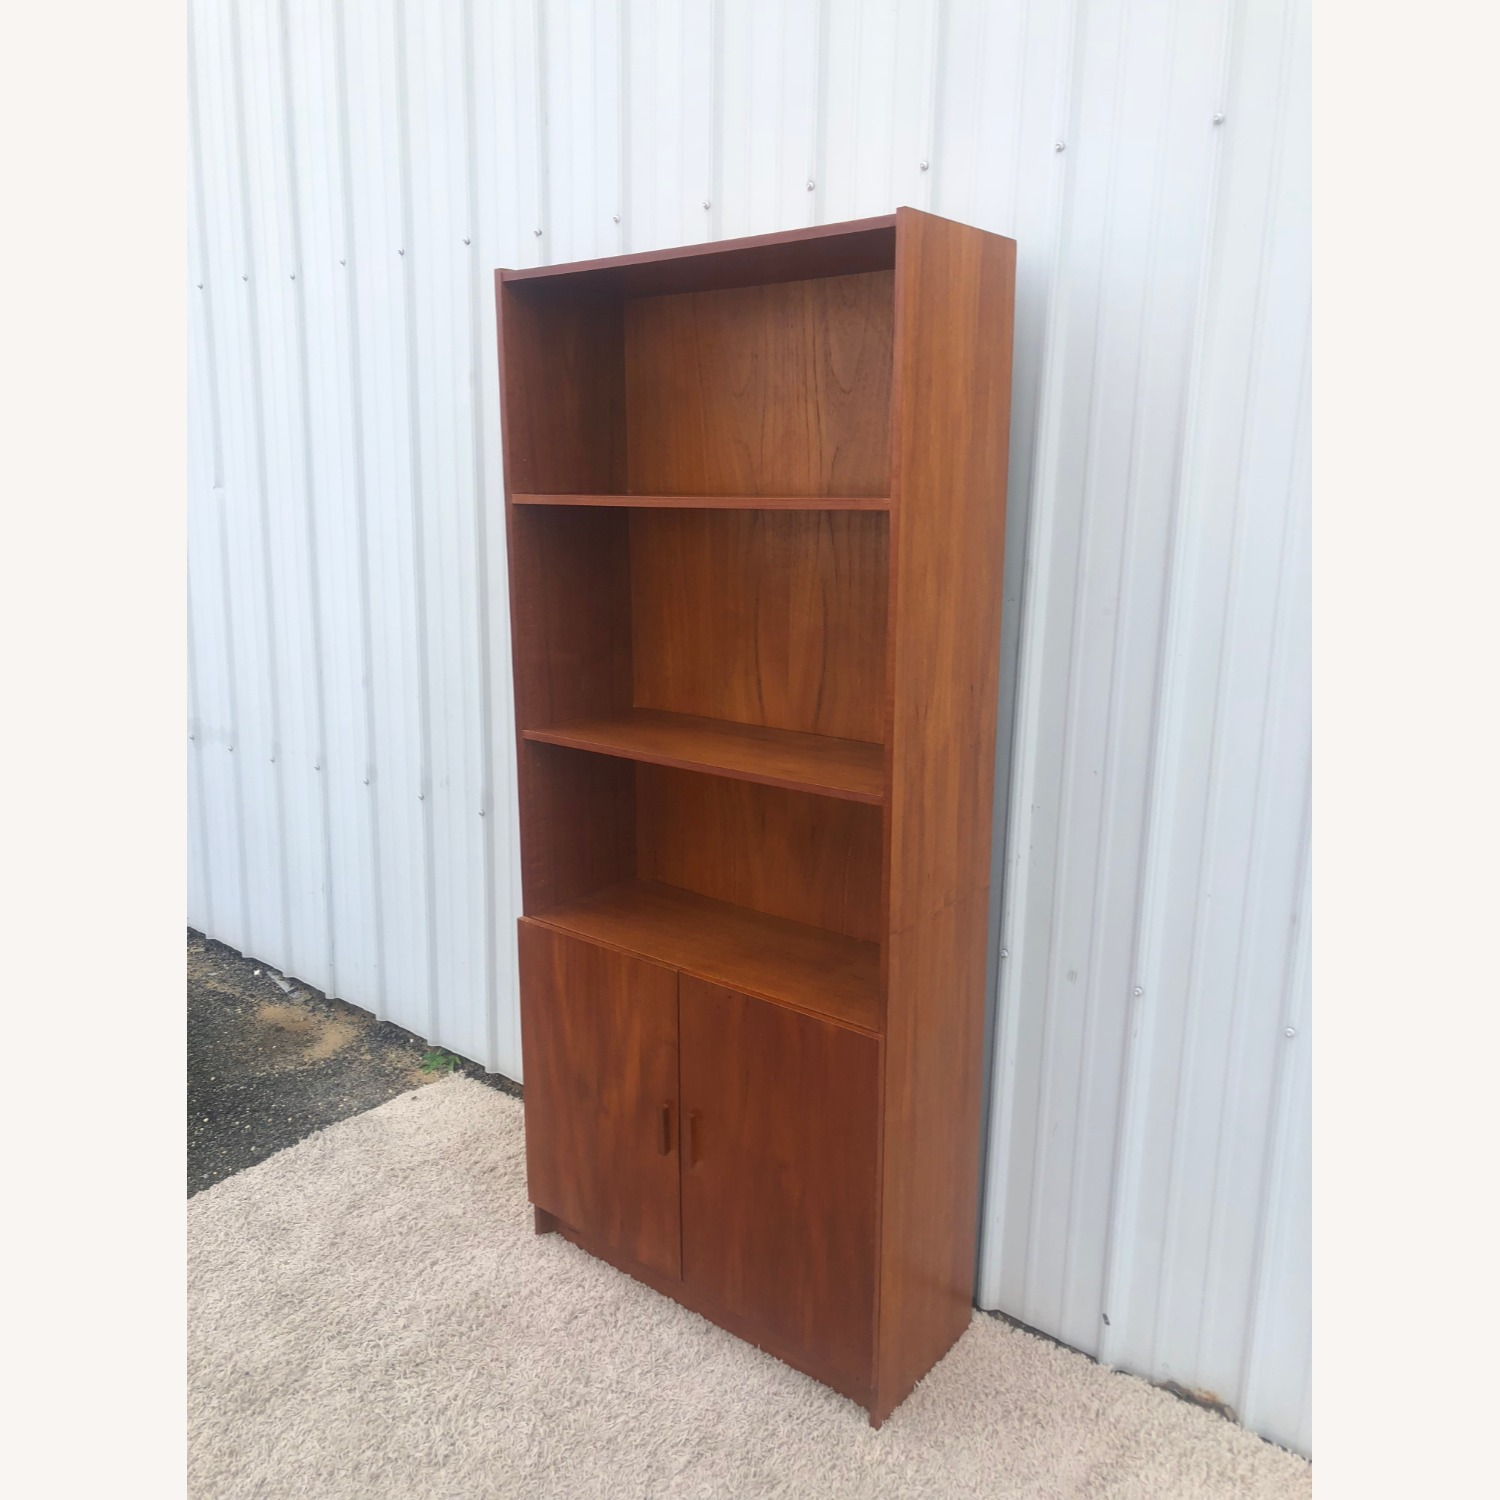 Danish Modern Teak Shelving with Cabinet - image-10